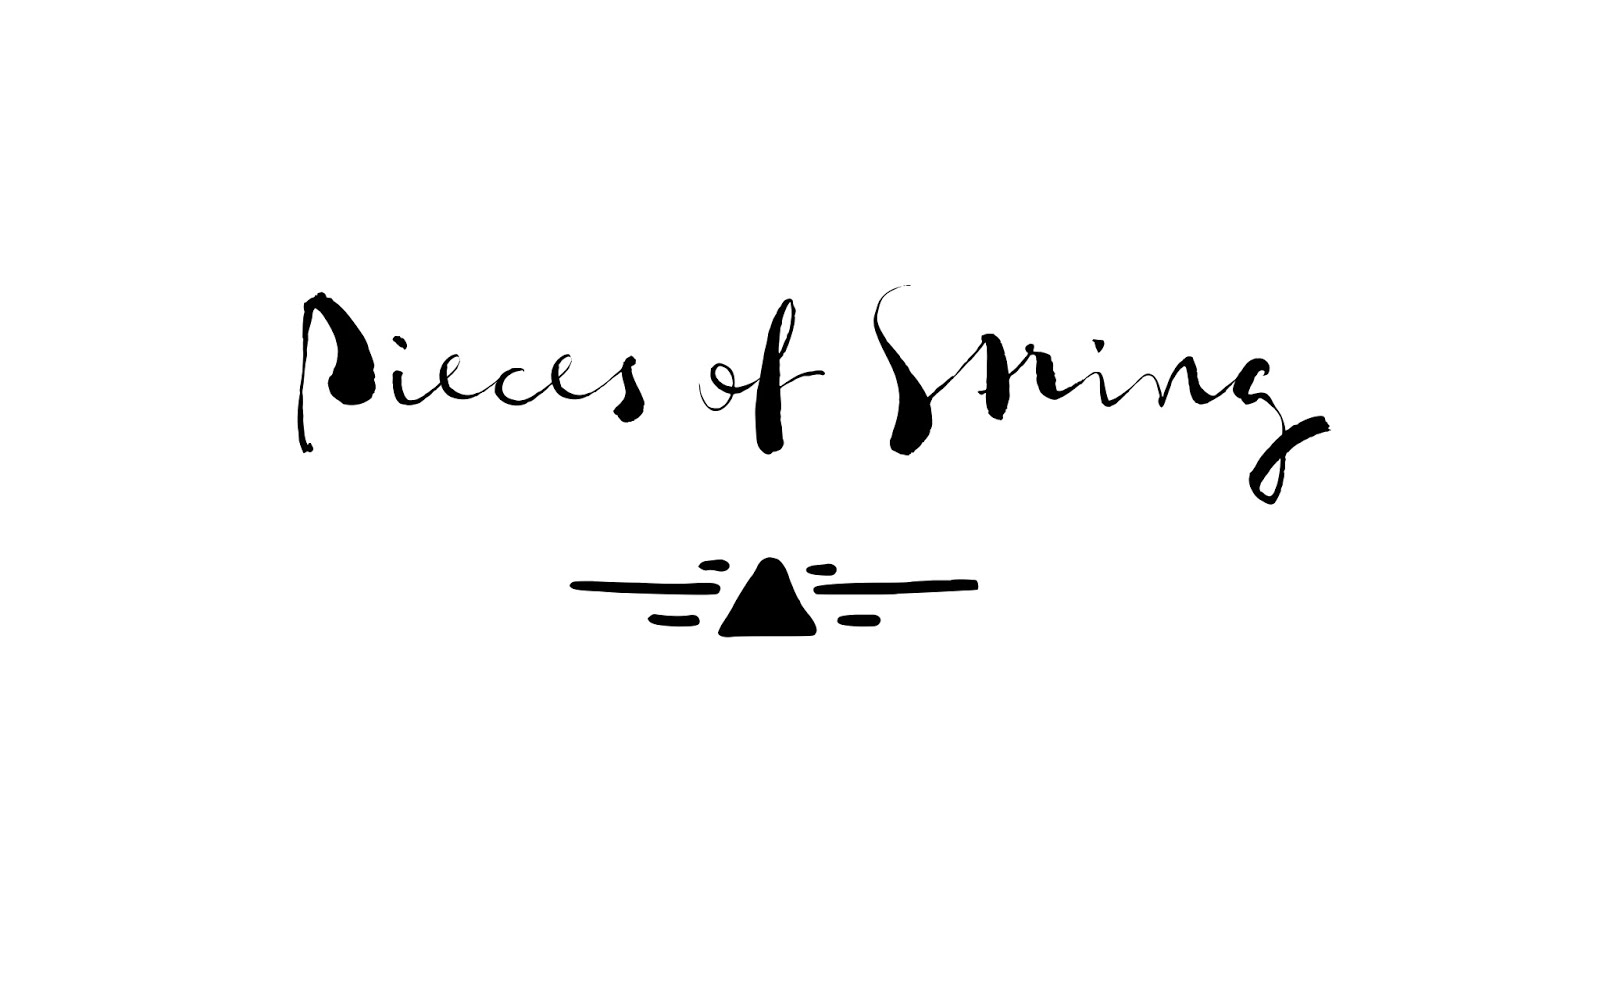 Pieces of String